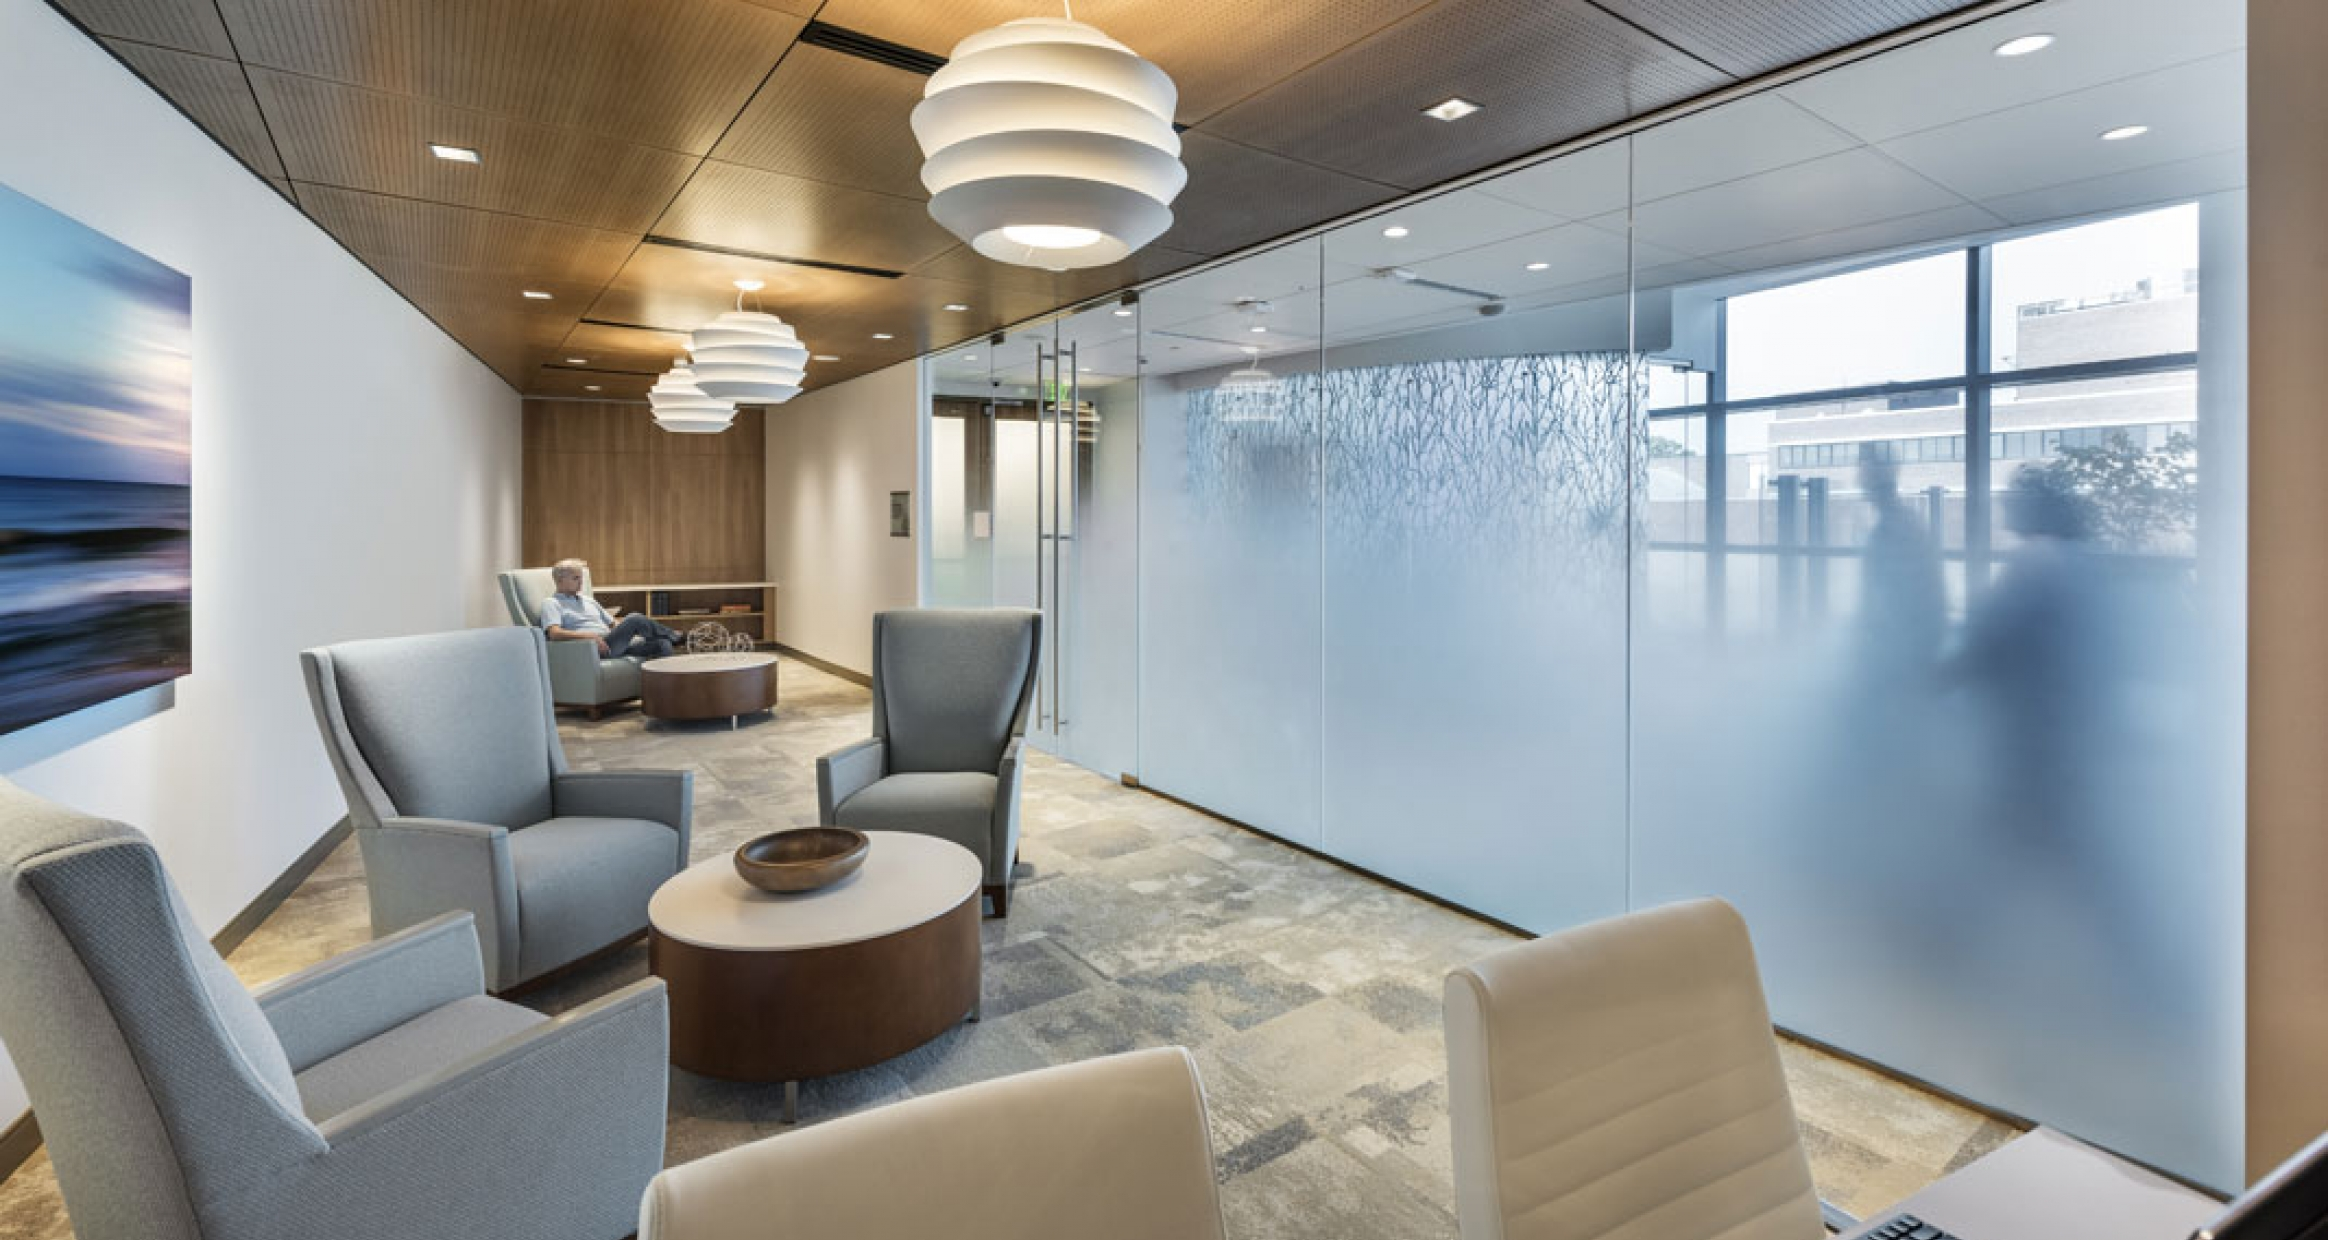 The ICU quiet waiting area features soft blues, natural light and frosted glass offering a private place to relax or utilize the resource center.